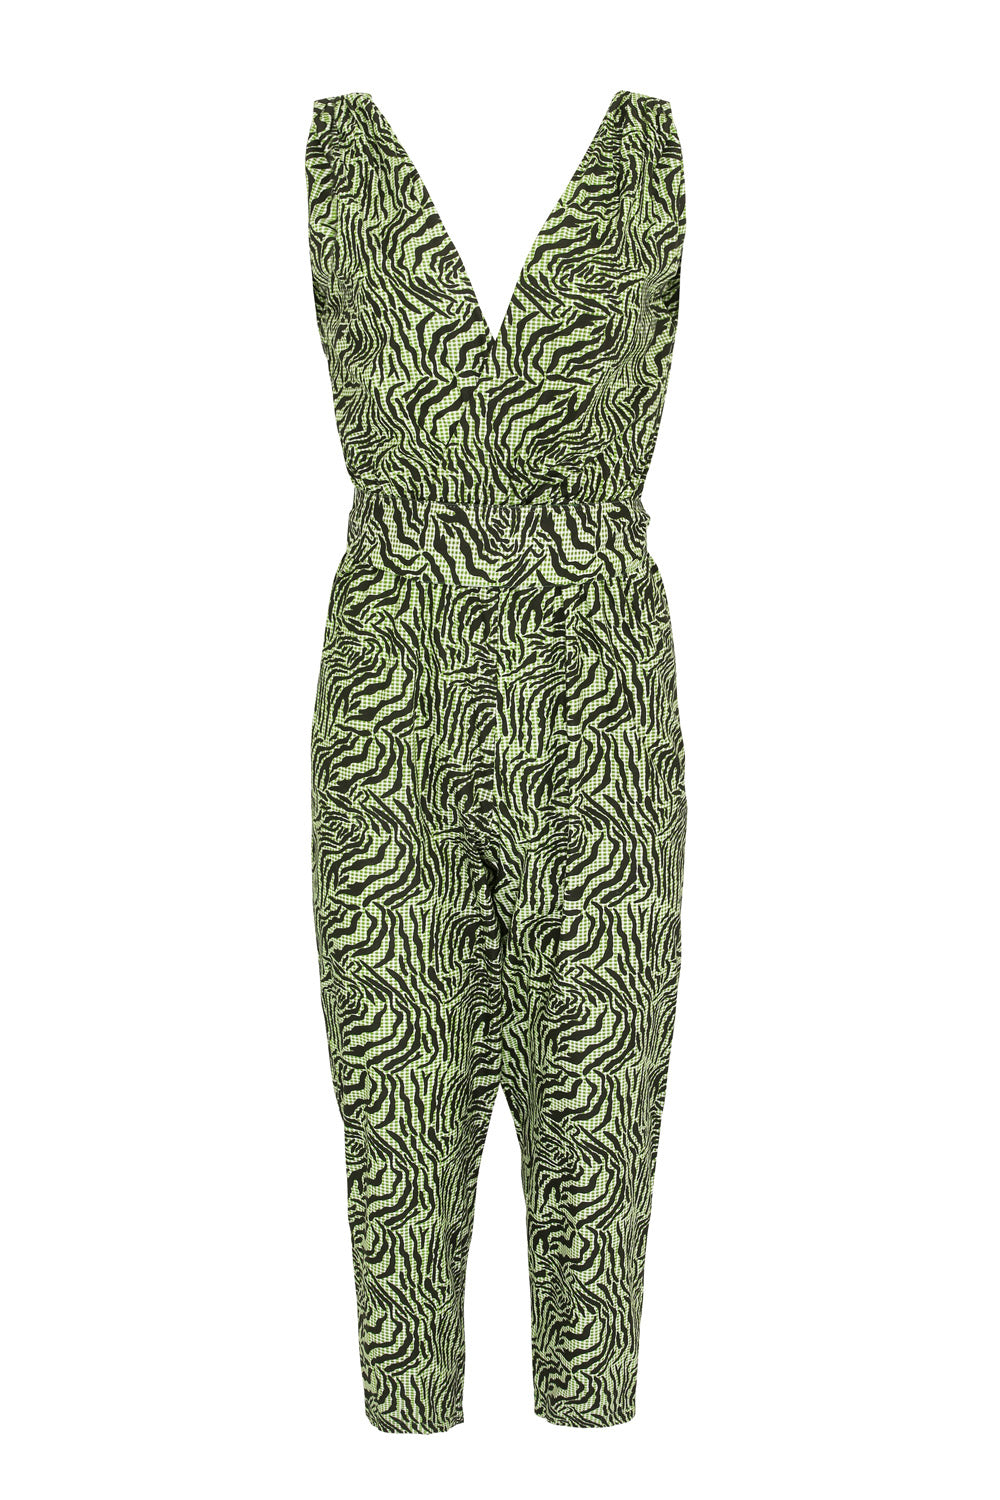 Just Like Heaven Green jumpsuit - Family Affairs